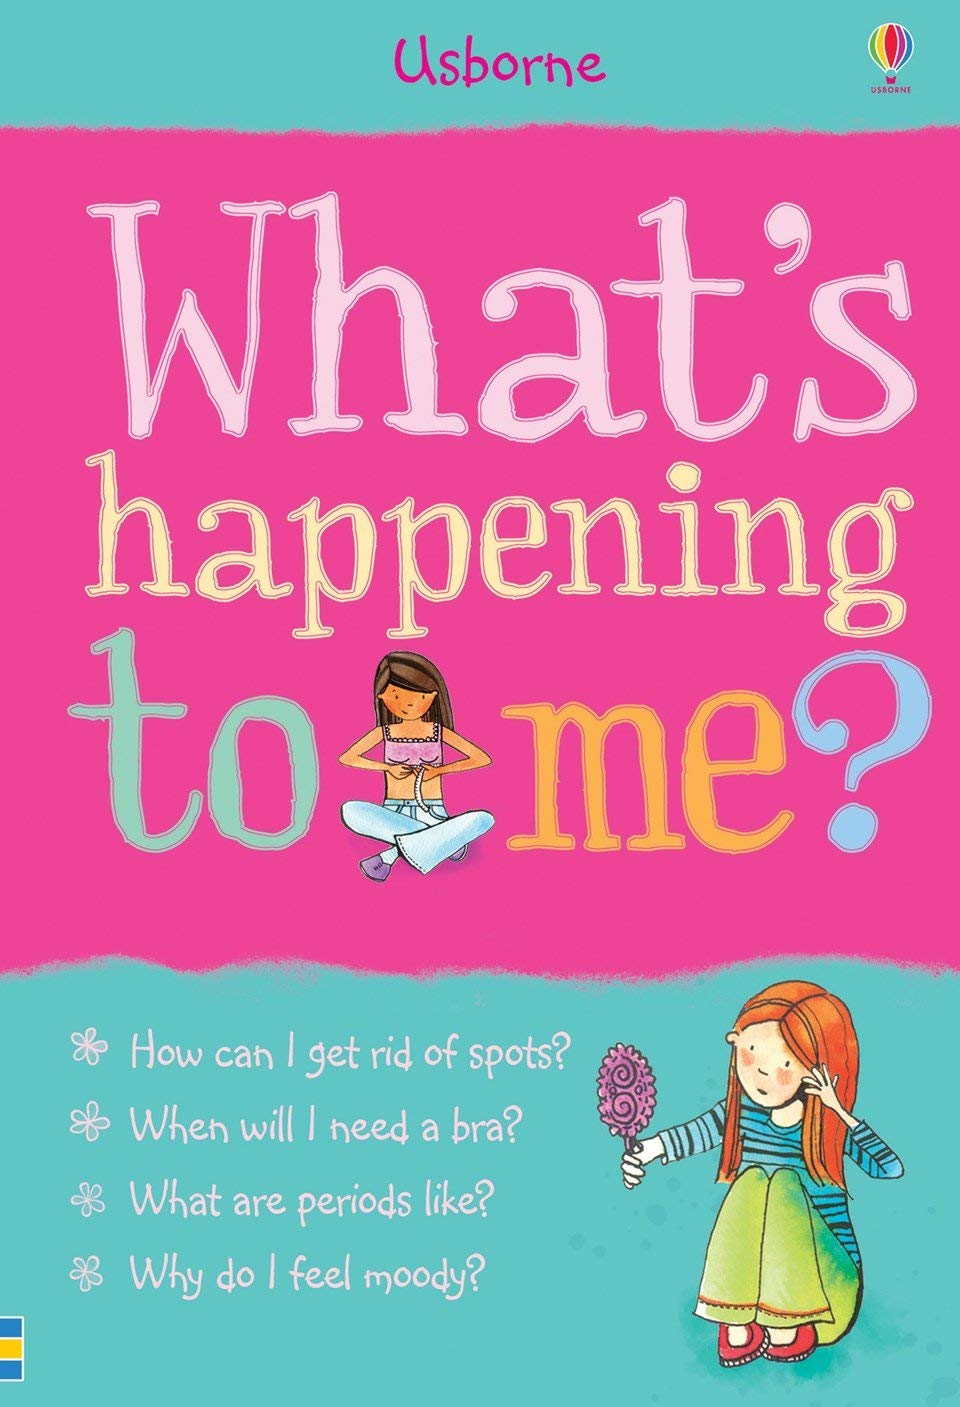 Usborne Whats happening to me girls Edition by Susan Meredith Nancy Leschnikoff